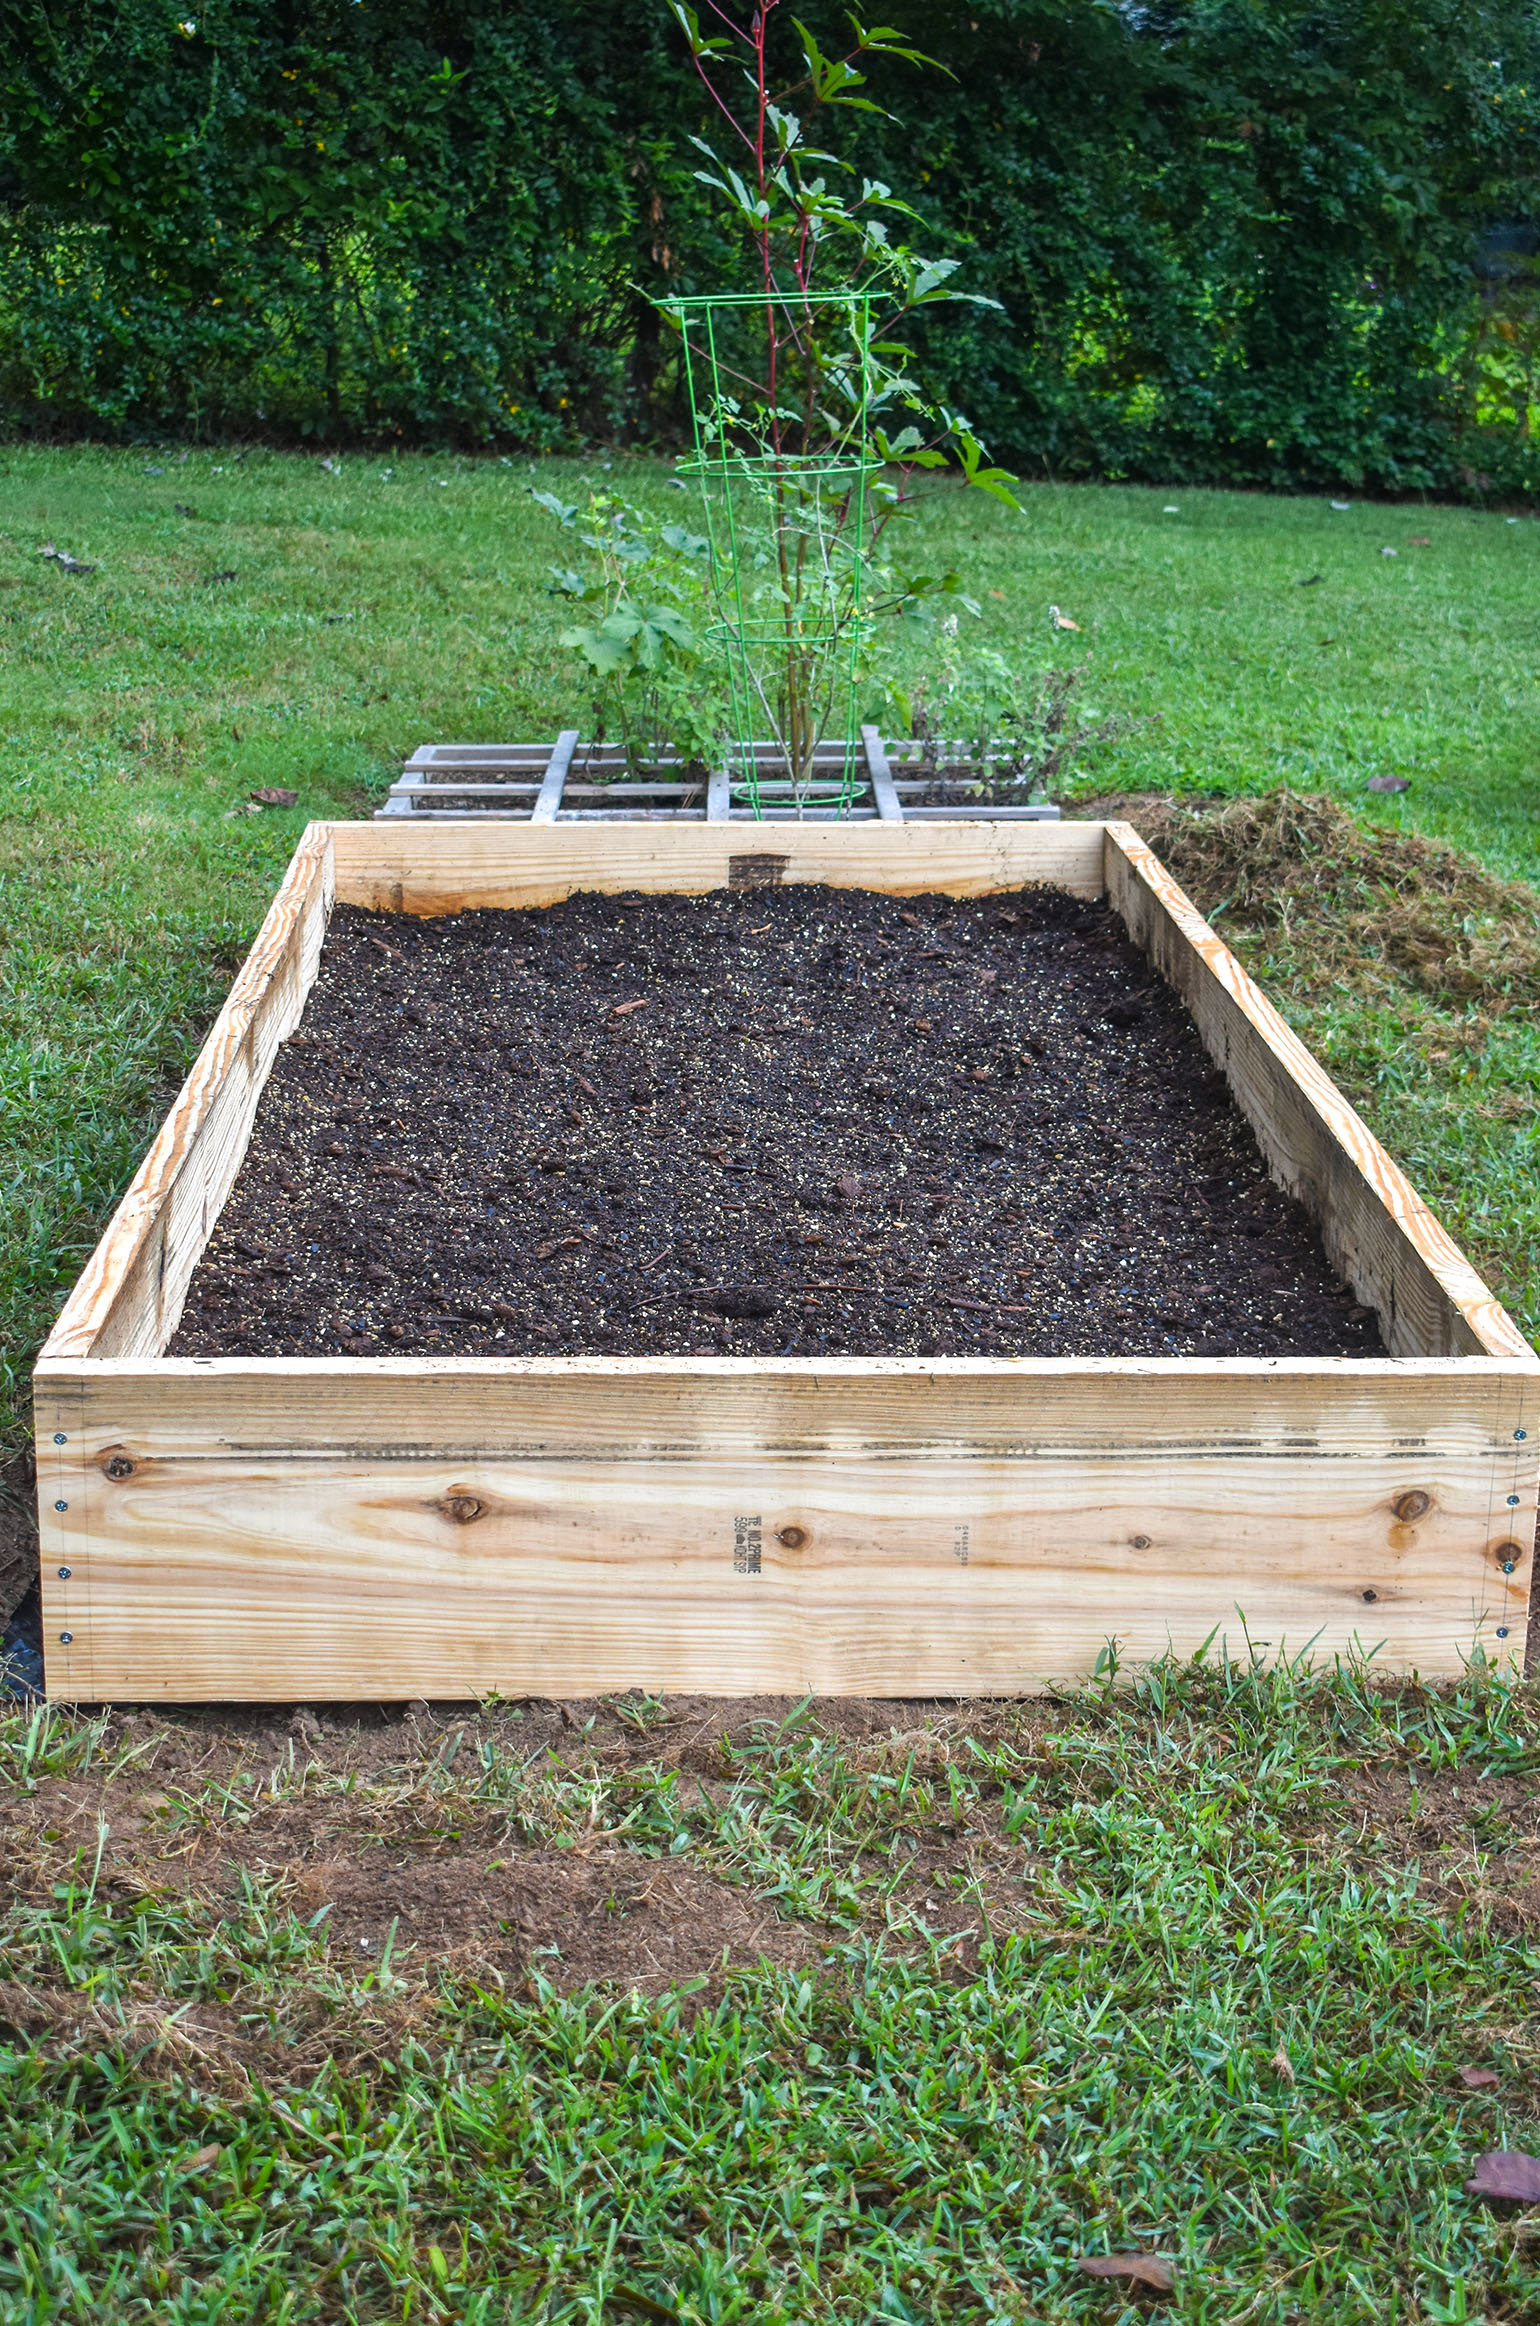 Planting a Fall Garden- Raised Garden Bed